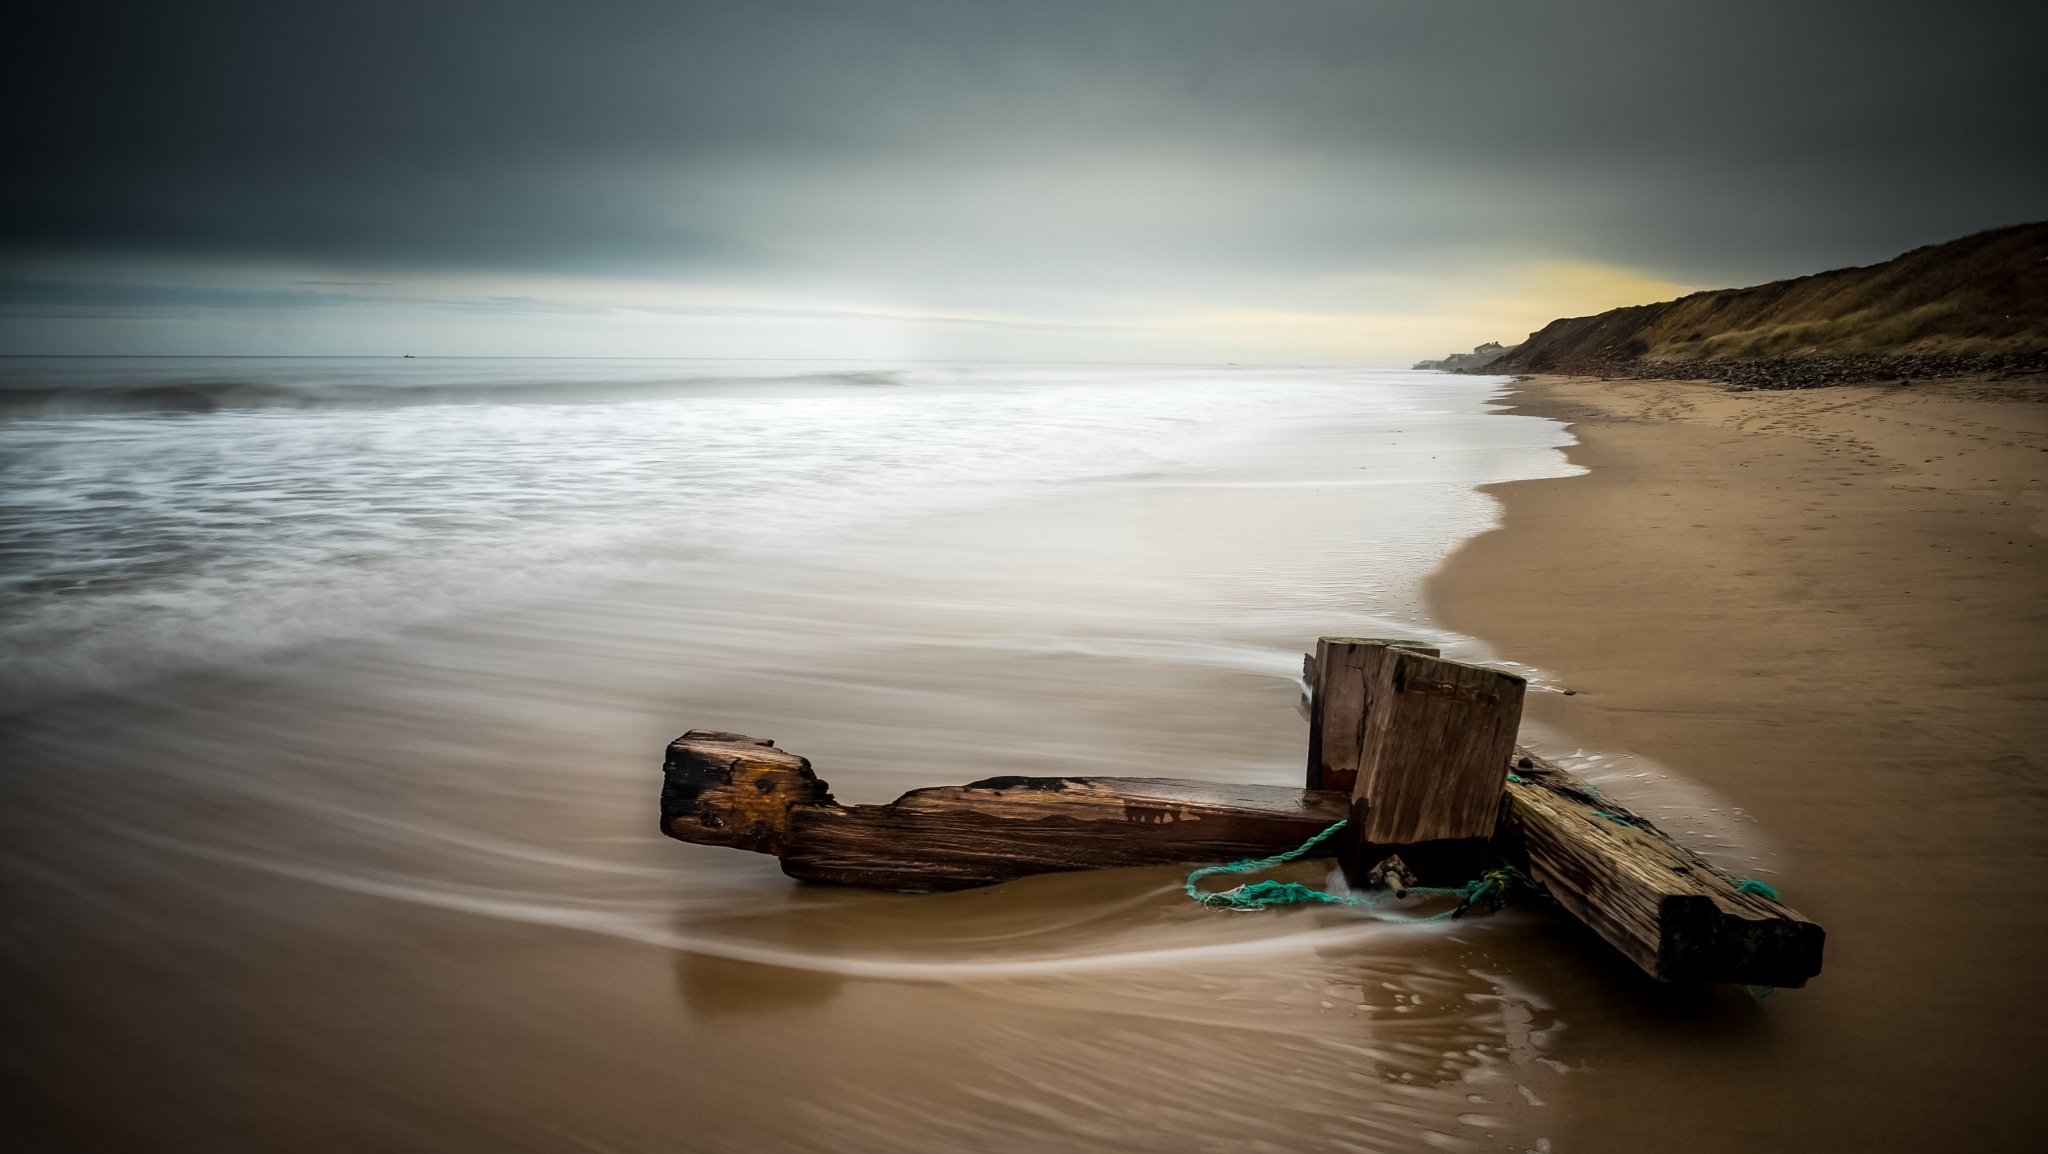 washed up by Peter Edwardo Vicente.